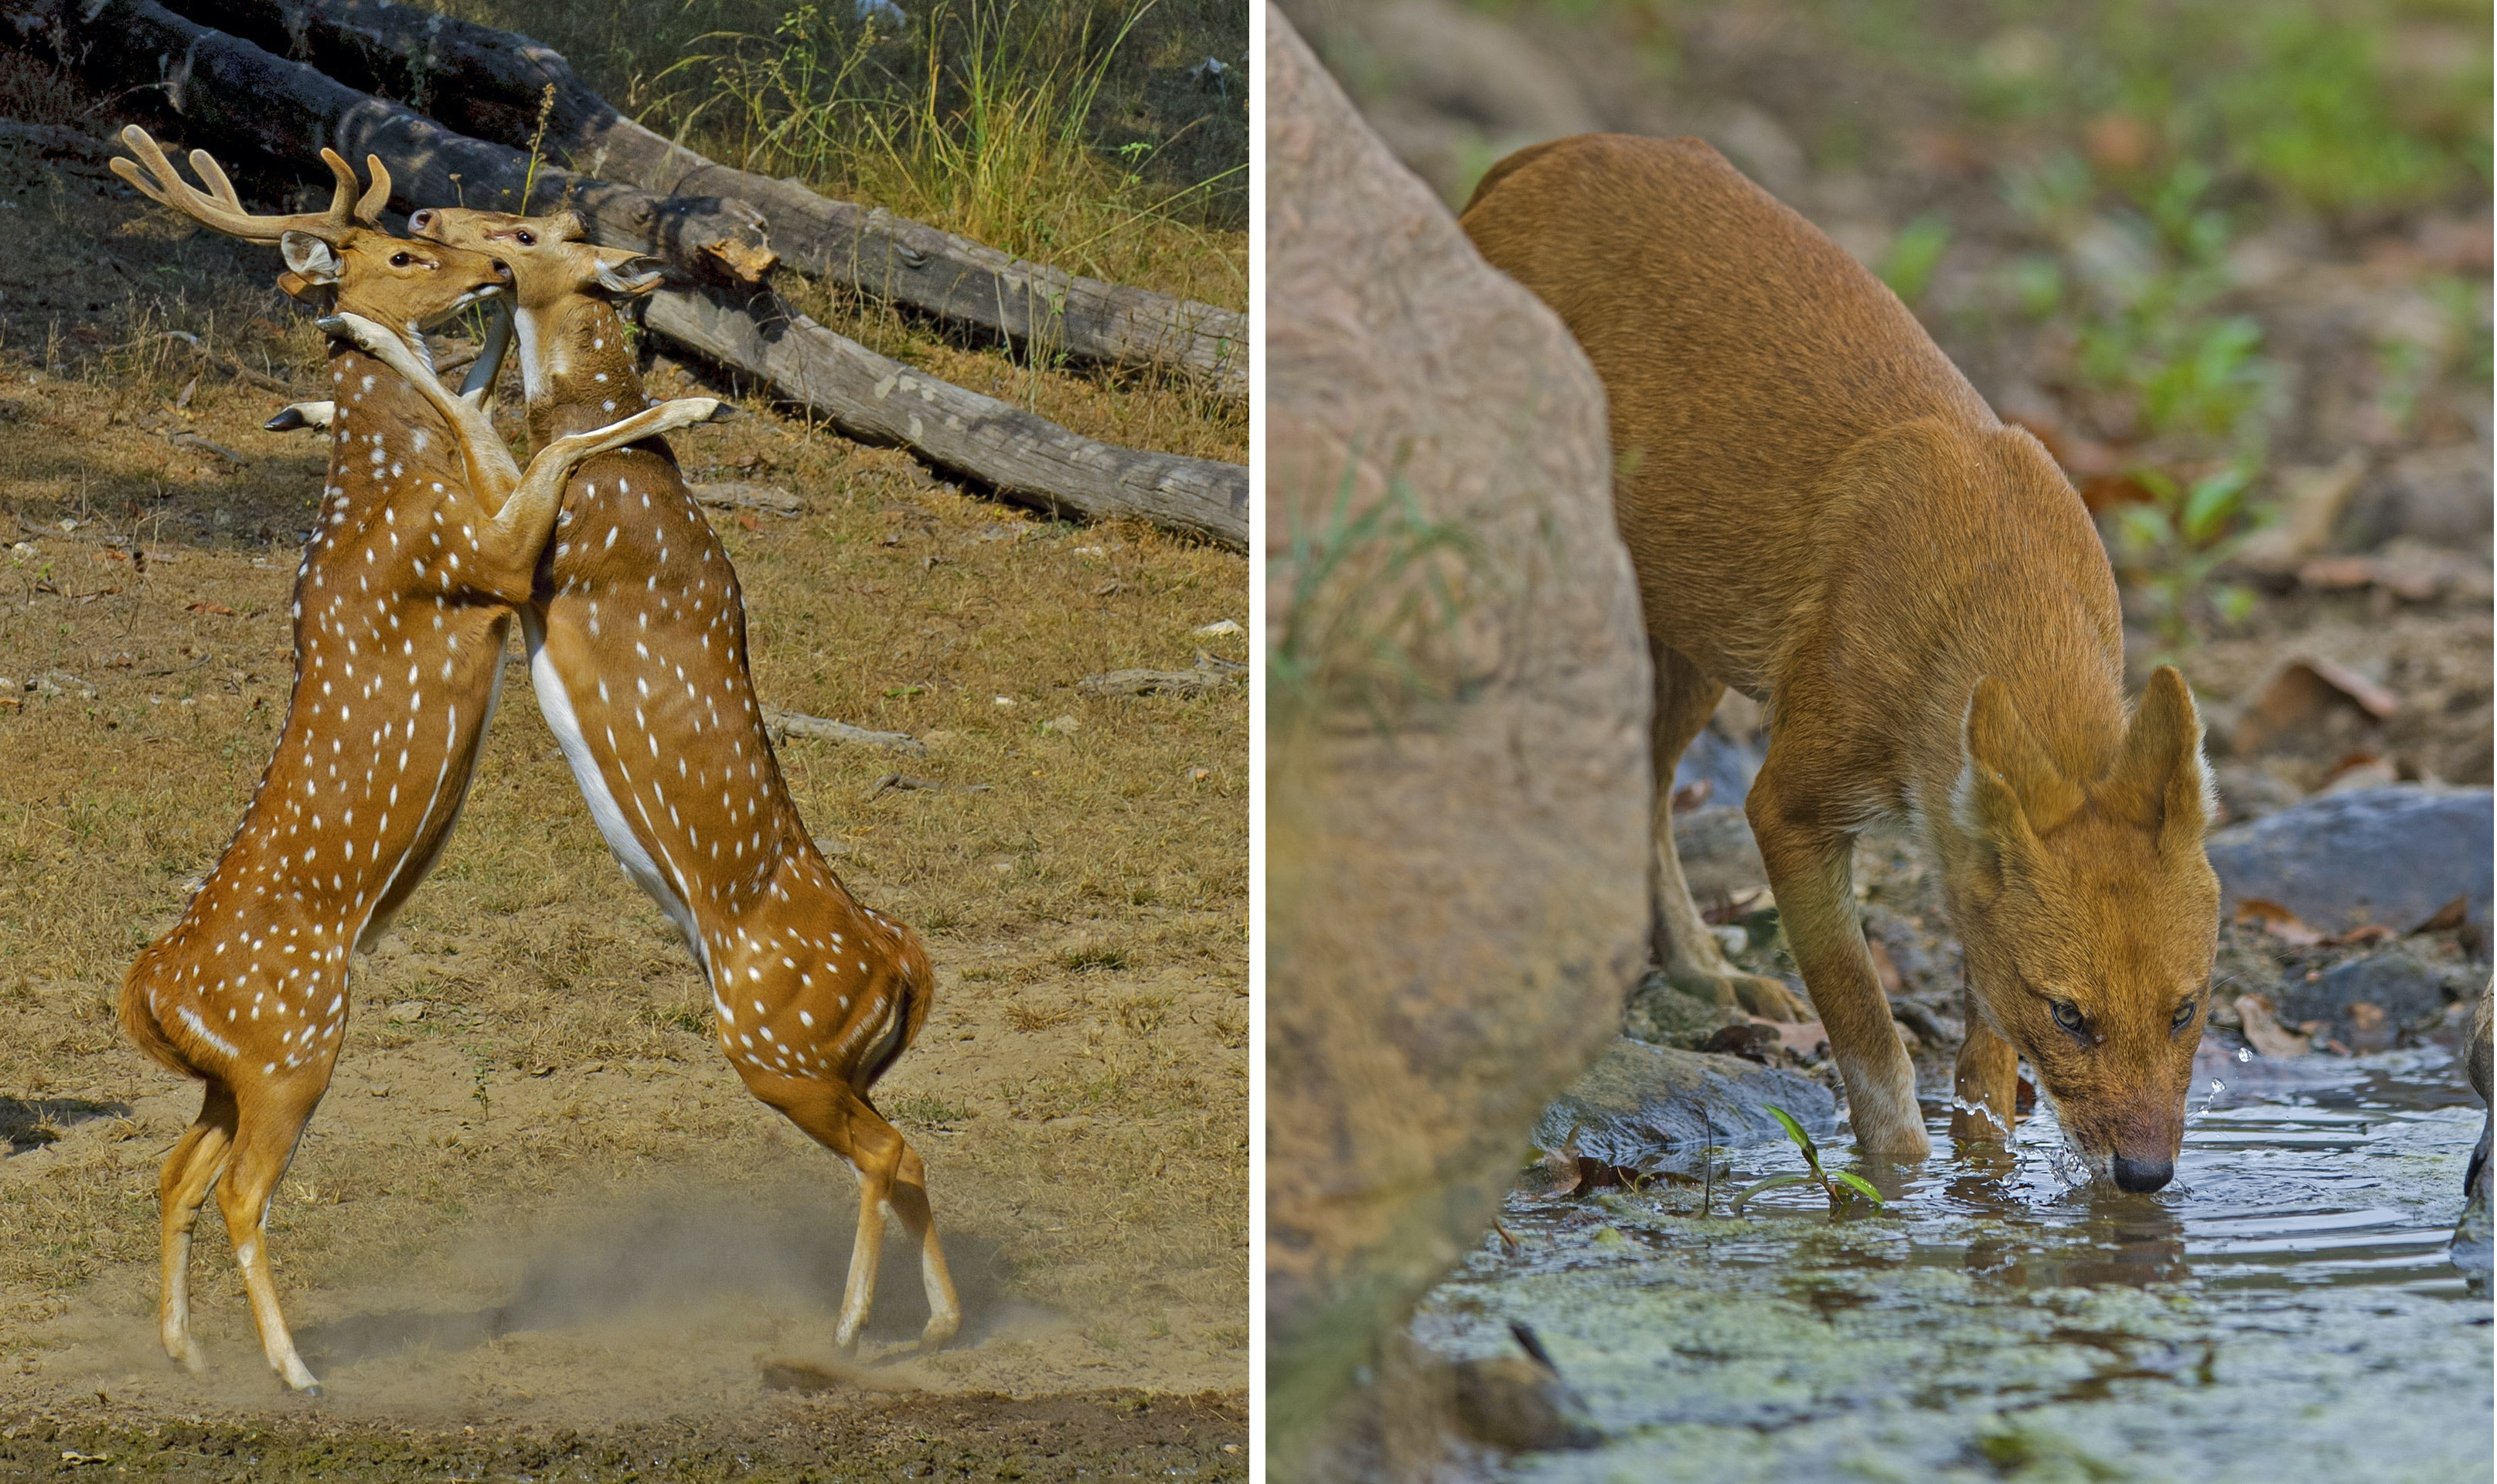 Left: In the main rutting season male chital, or spotted deer, will spar using their antlers, even getting onto their hind legs to assert themselves. Right: Dhole, the Indian wild dog, is an adept predator that lives and hunts in packs. Groups work together to bring down prey much larger than themselves, like sambar and spotted deer.